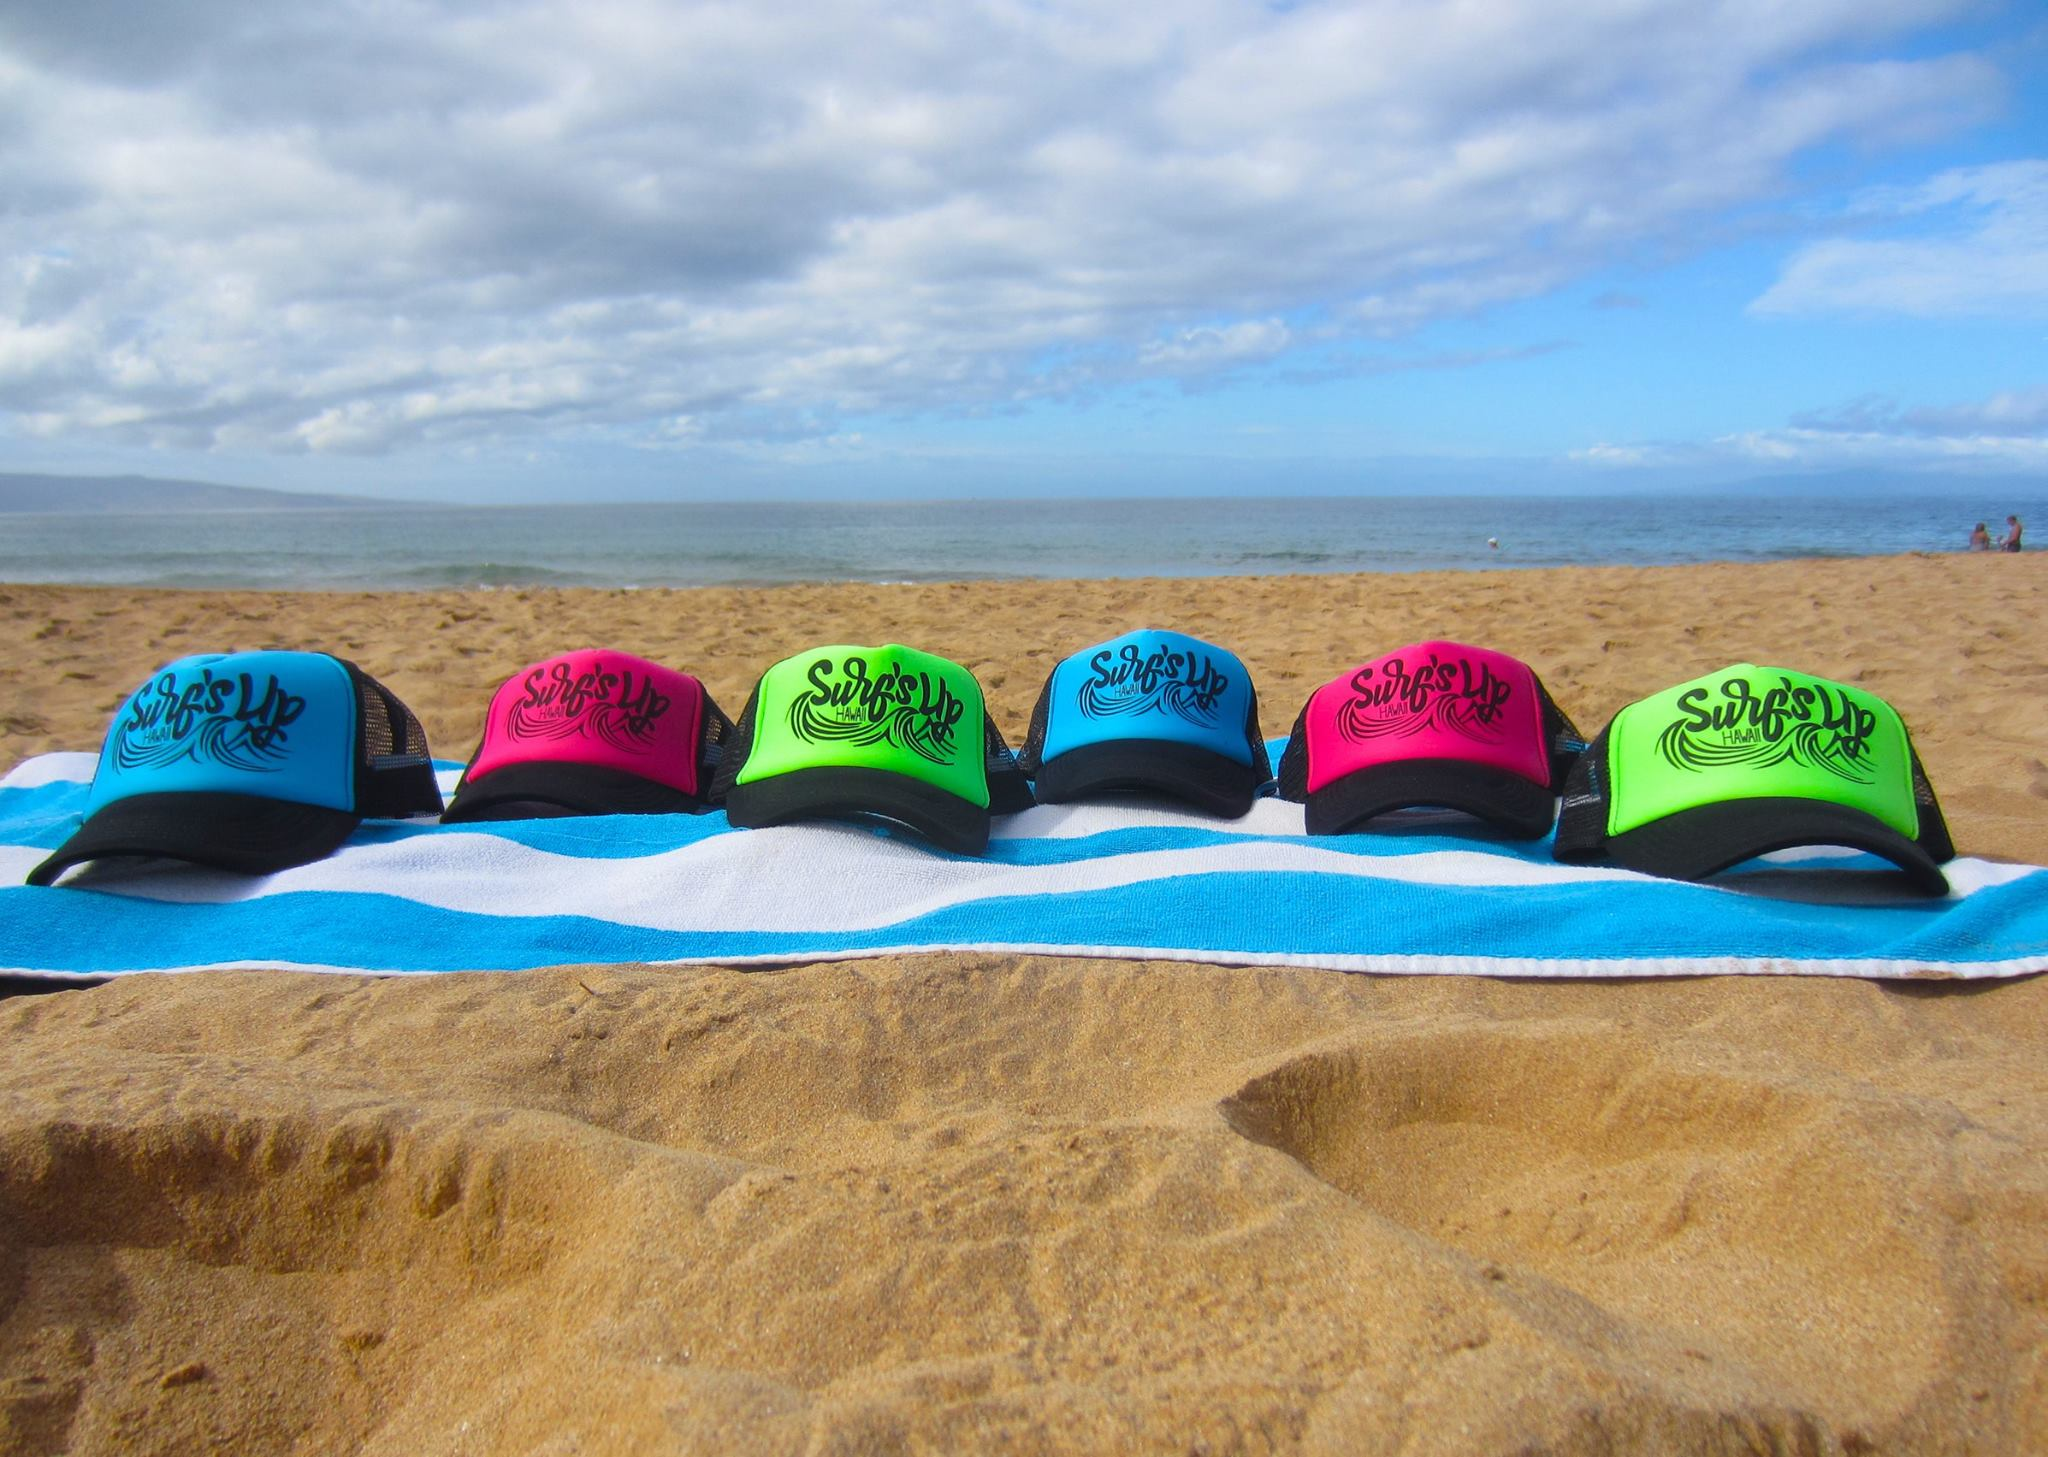 Surfs up hats